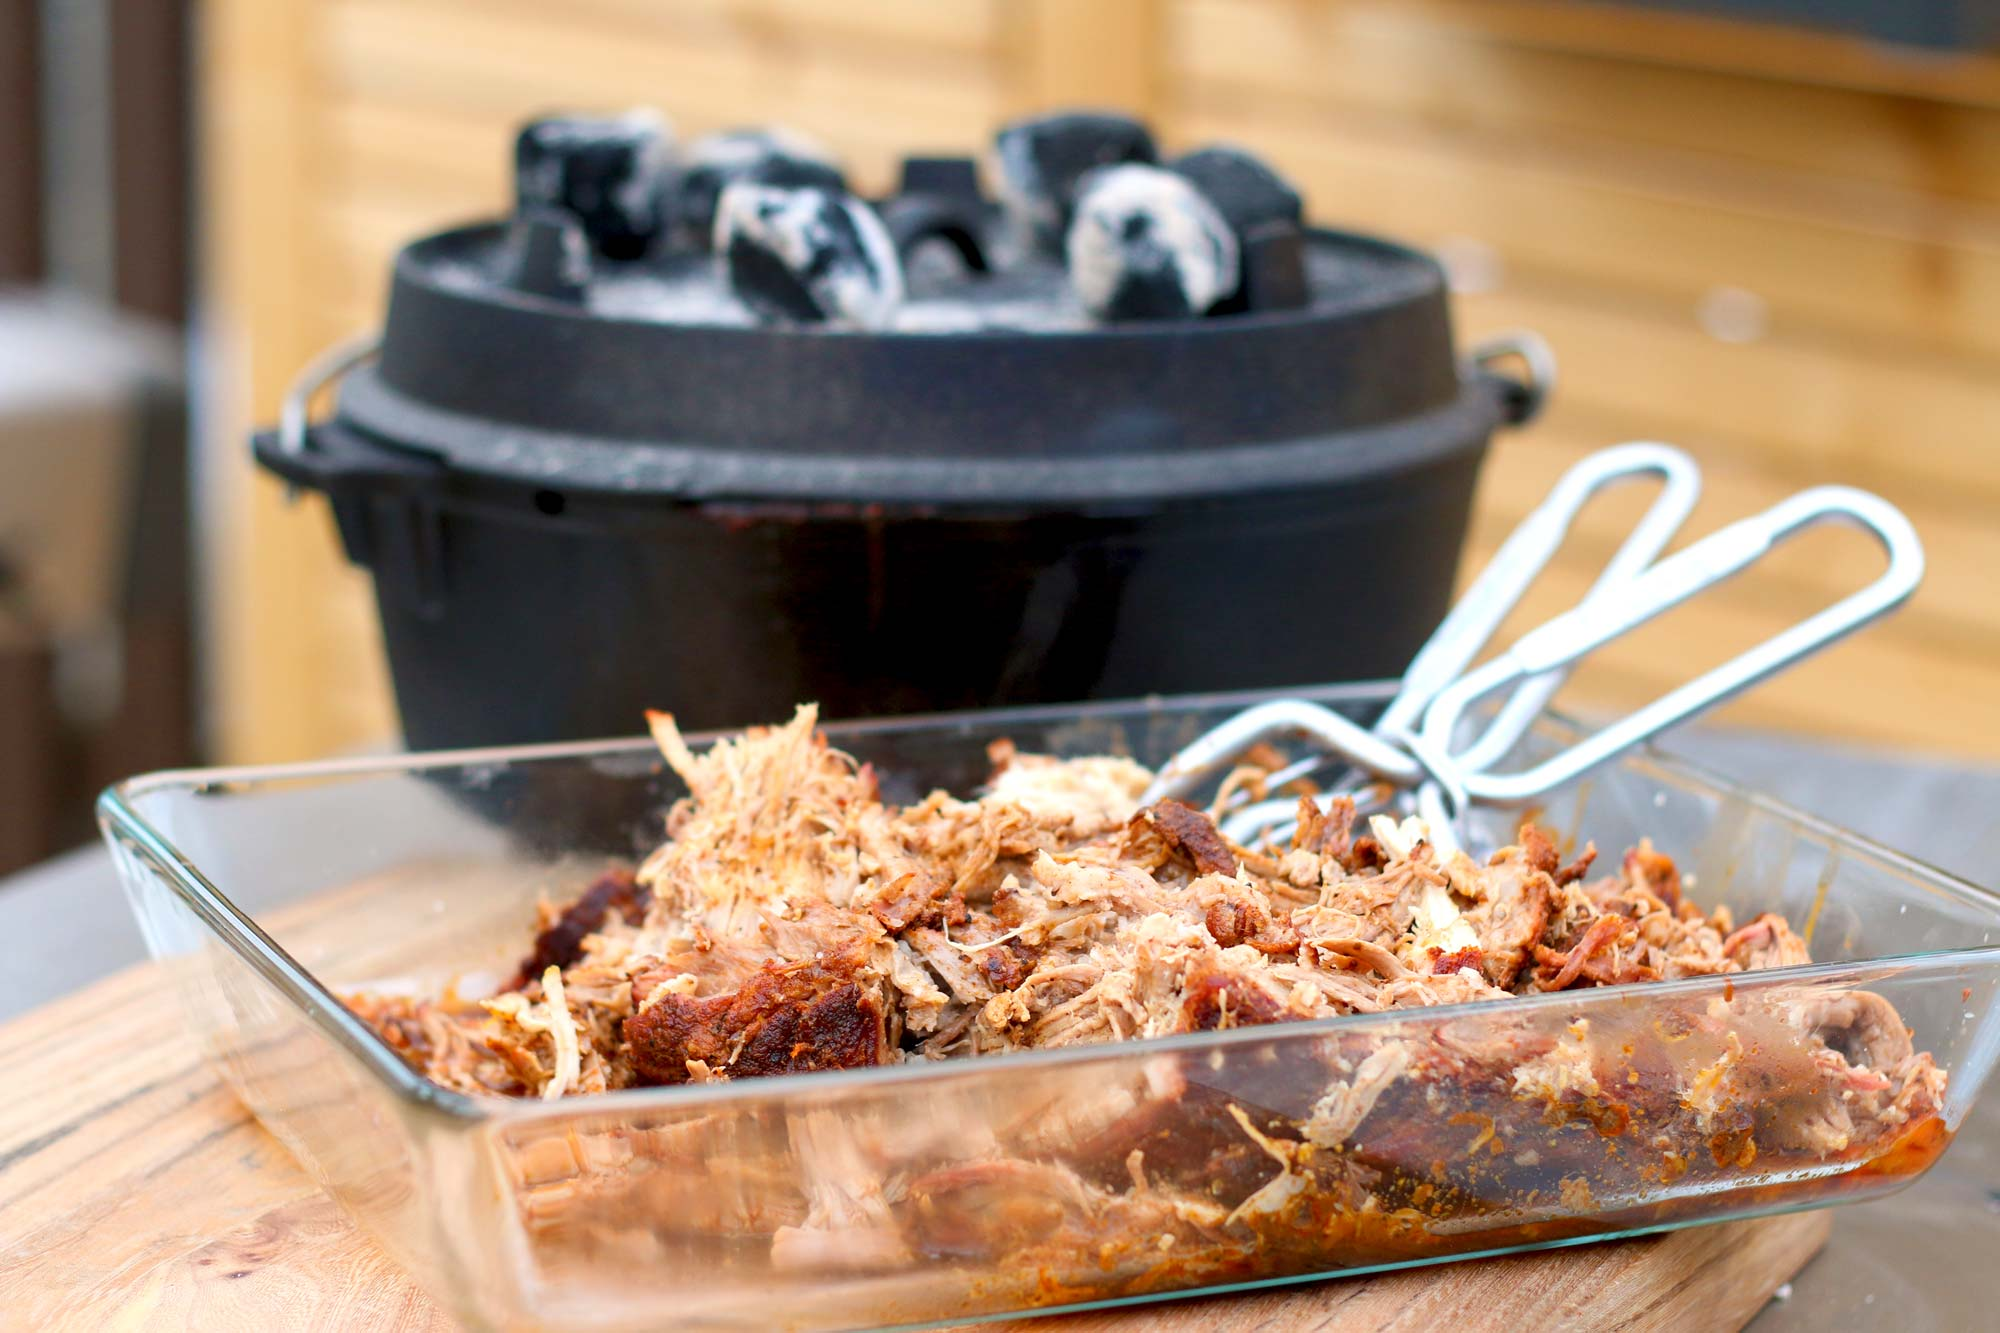 Pulled Pork Gasgrill Temperatur Zu Hoch : Pulled pork aus dem dutch oven highspeed pp in h